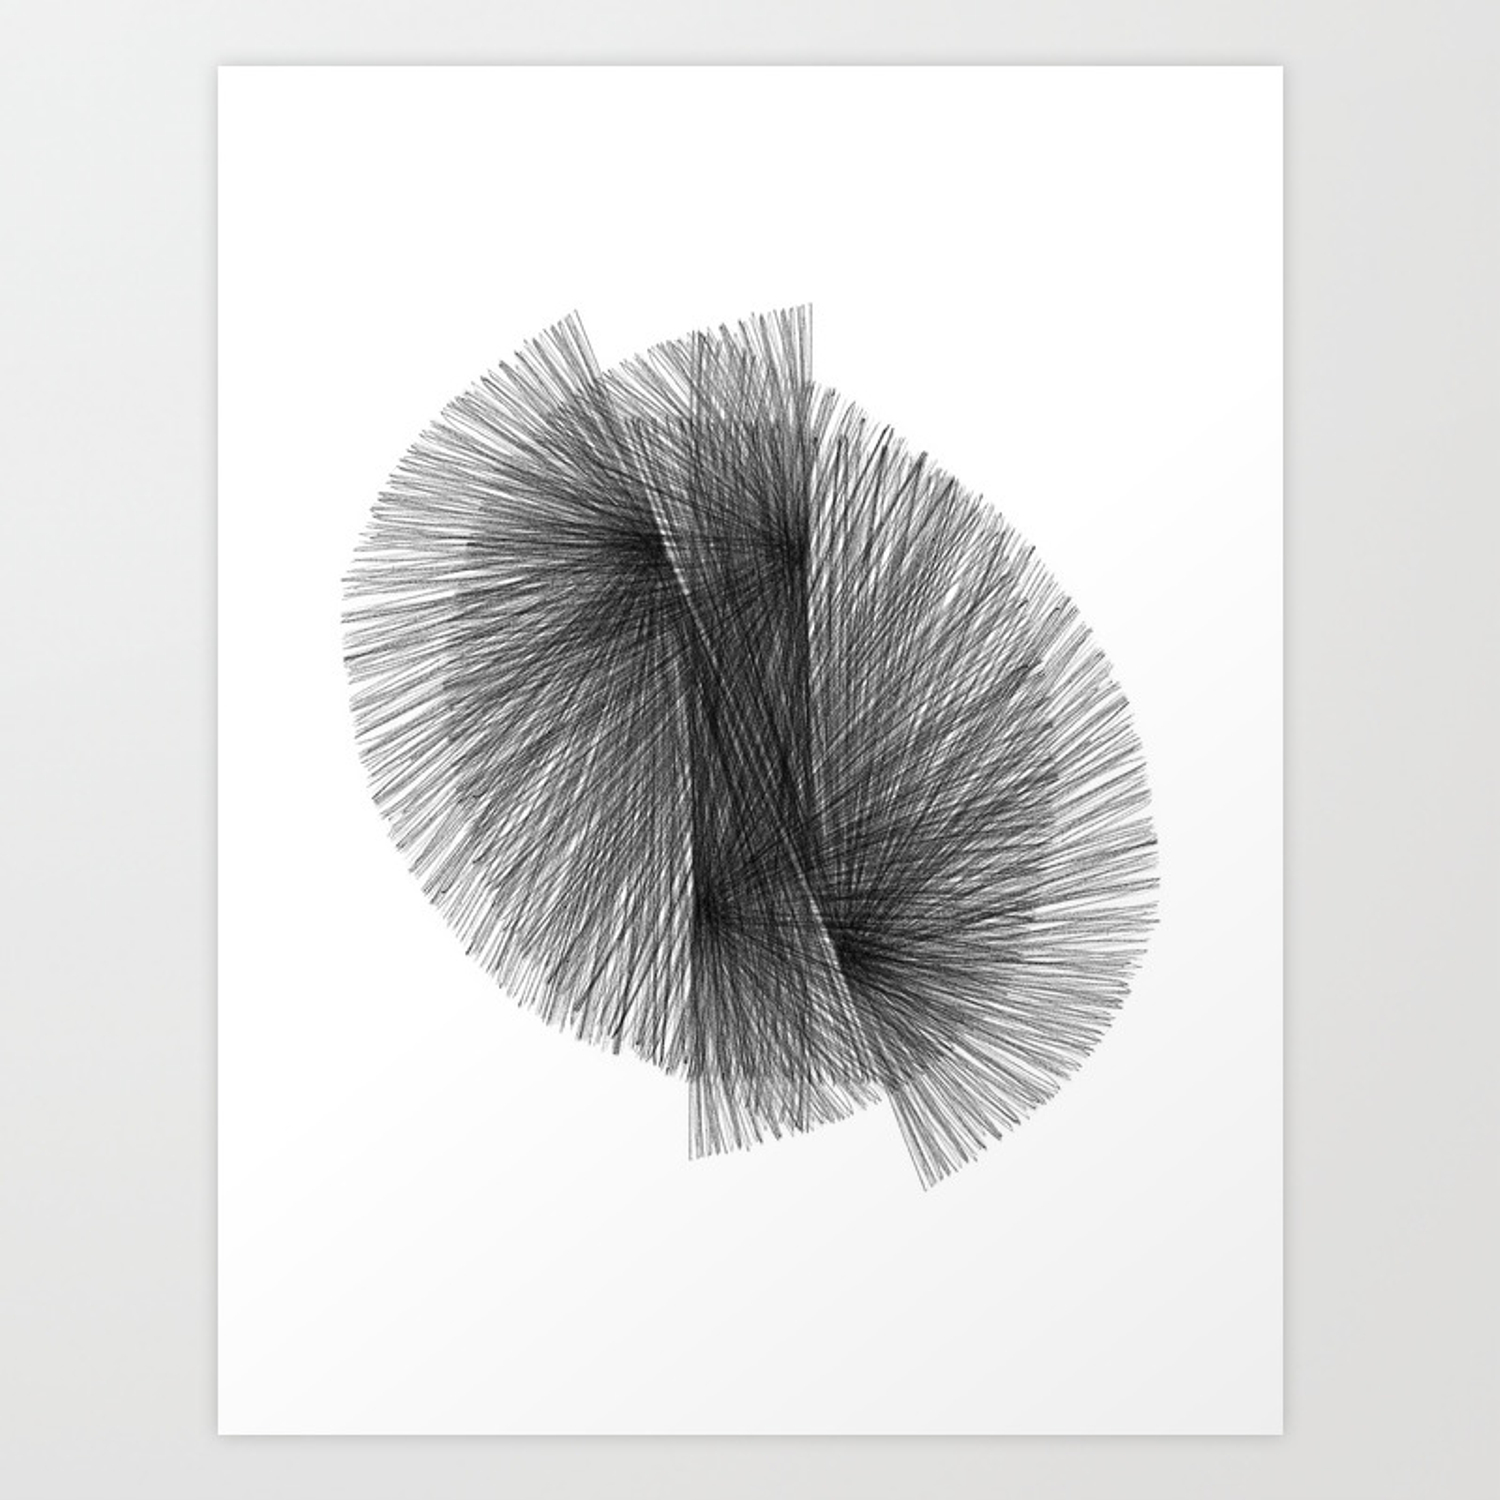 Black white radiating lines mid century modern geometric abstract art print